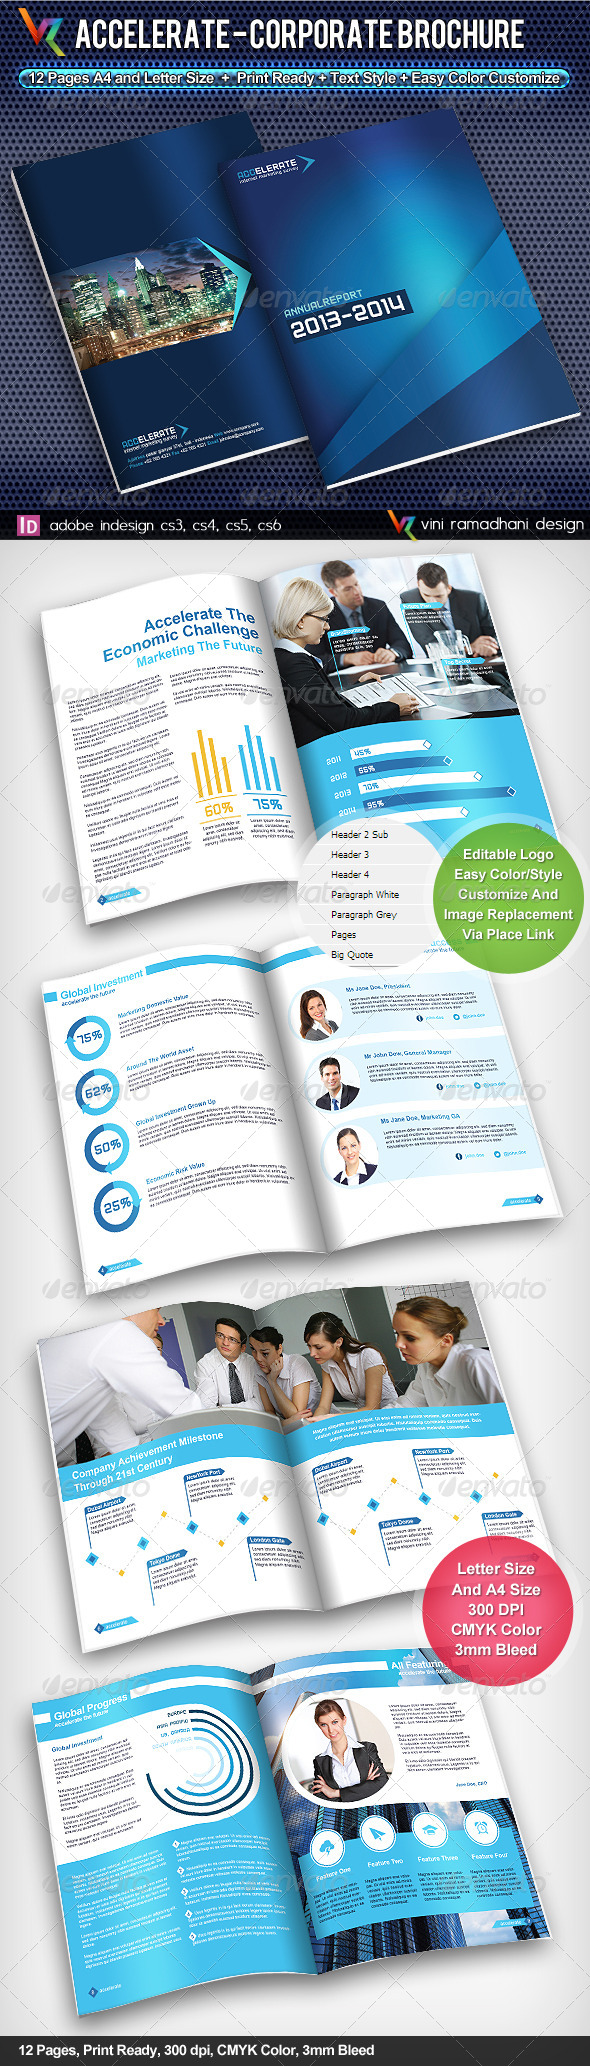 GraphicRiver Accelerate Corporate Brochure 4085207